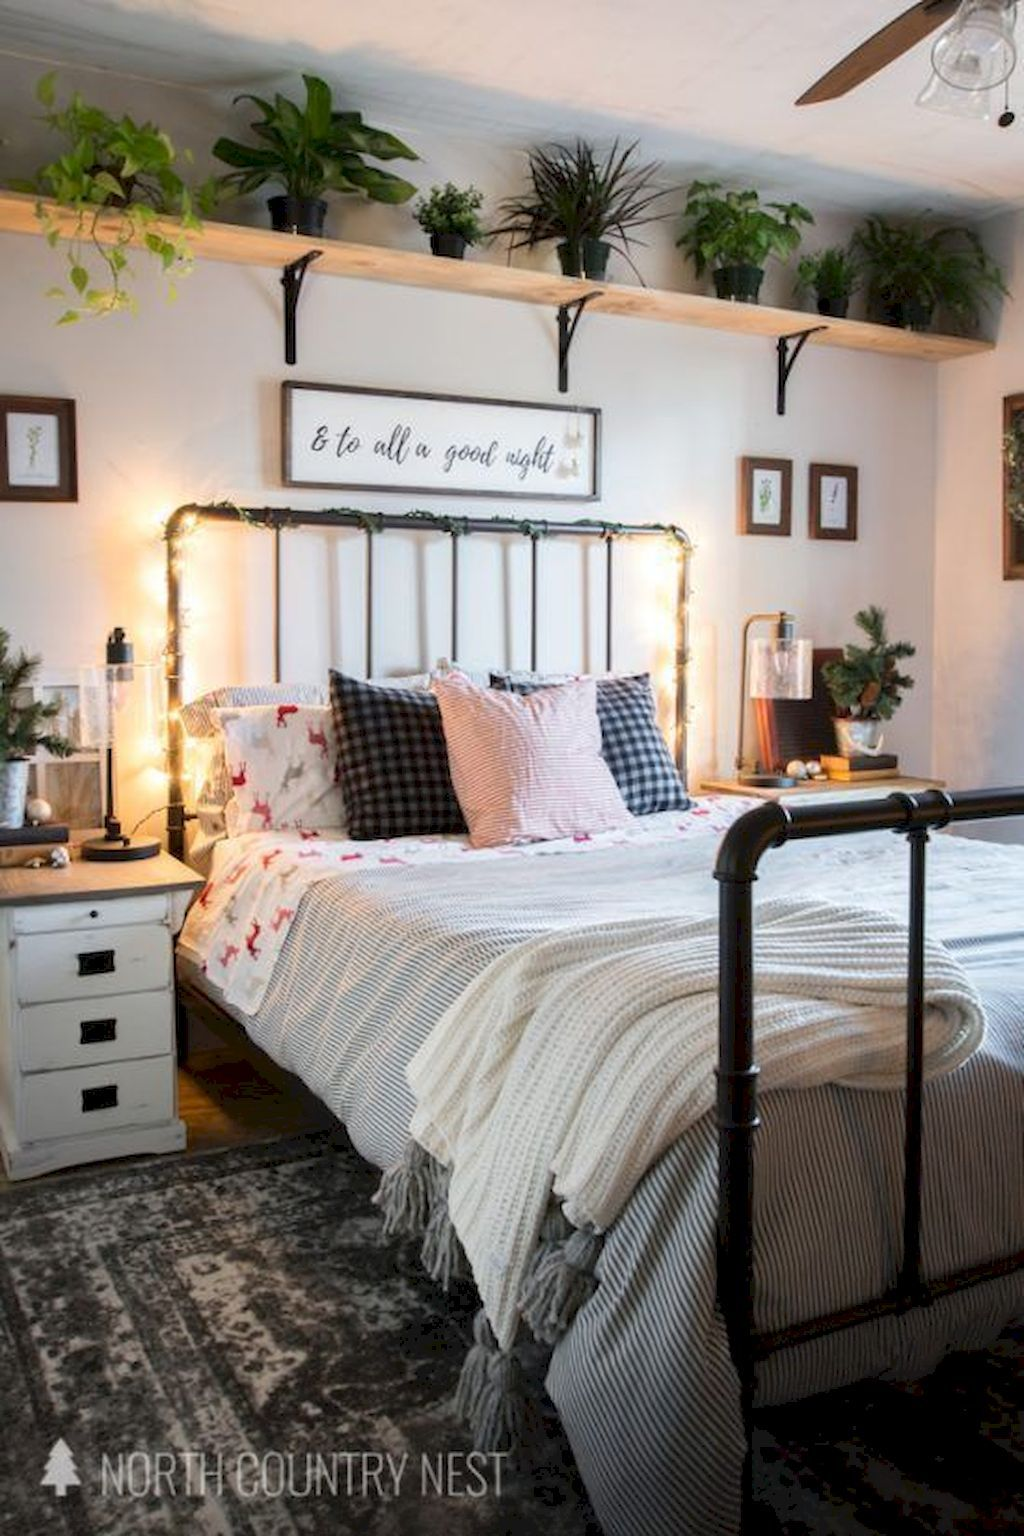 50+ Cheap Bedrooms Makeover Ideas You Really Need | Cheap ... on Cheap Bedroom Ideas For Small Rooms  id=71329